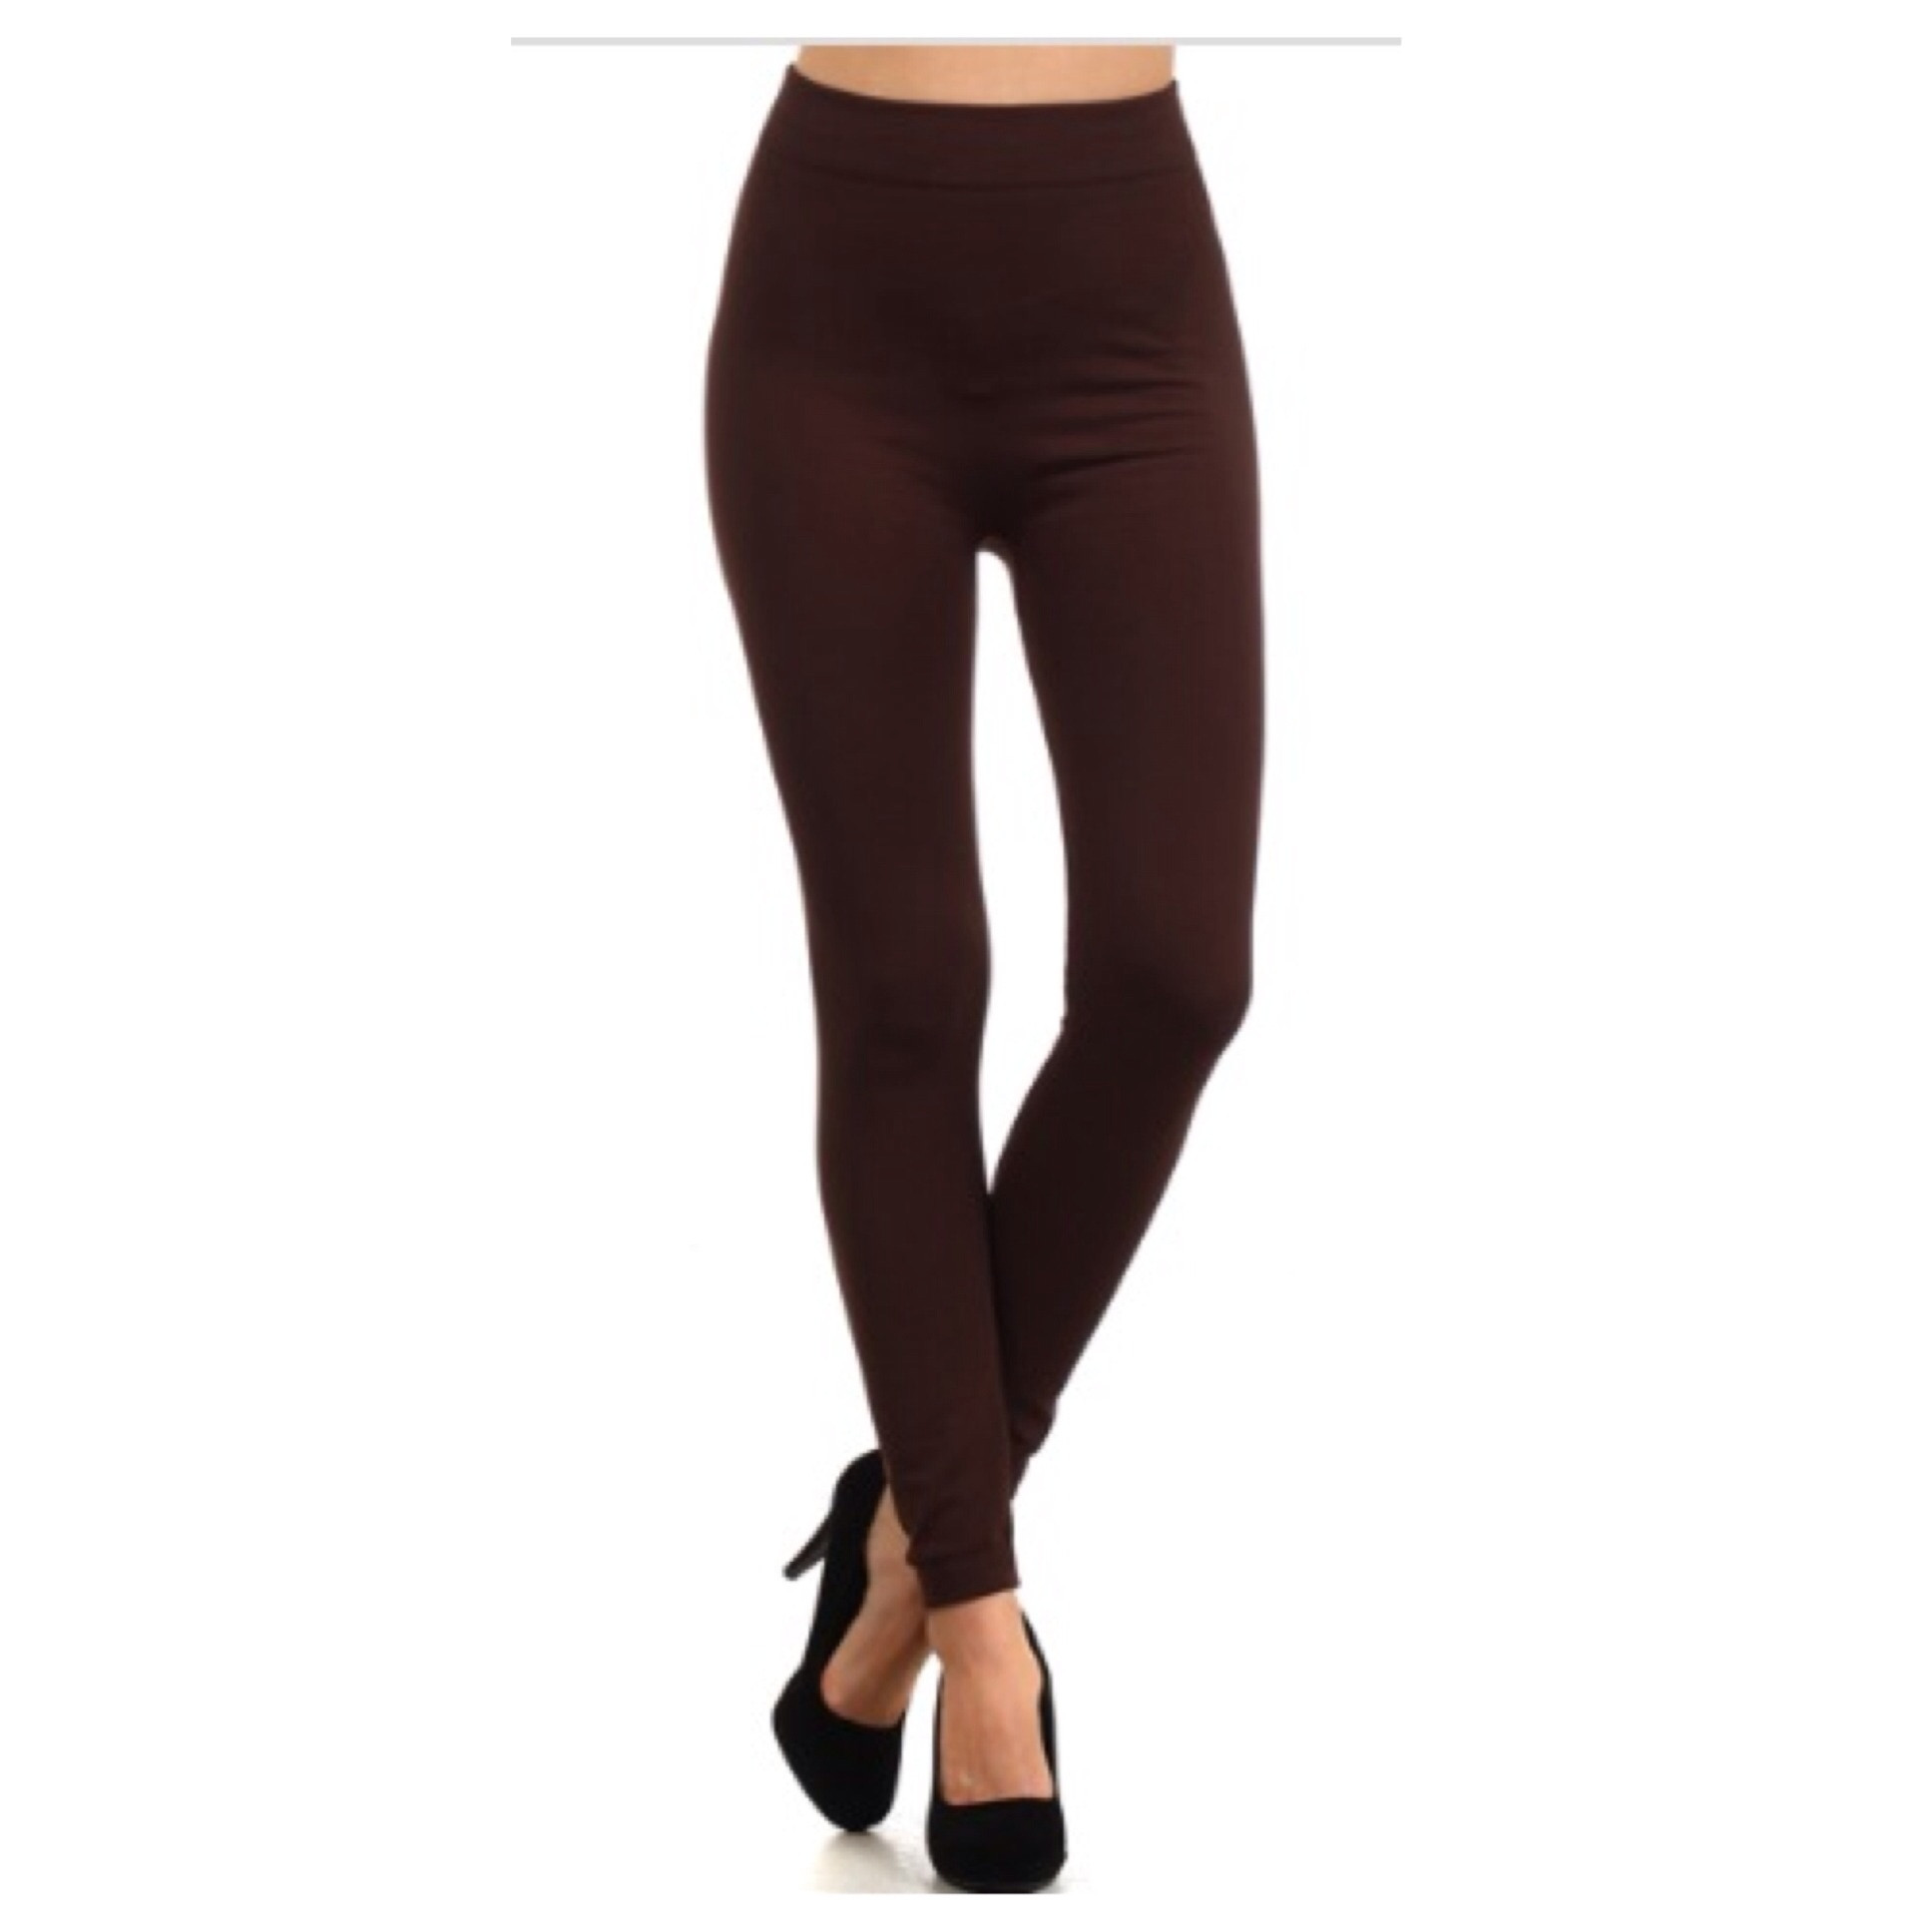 in style fleece lined solid coffee brown leggings CFRXZVU